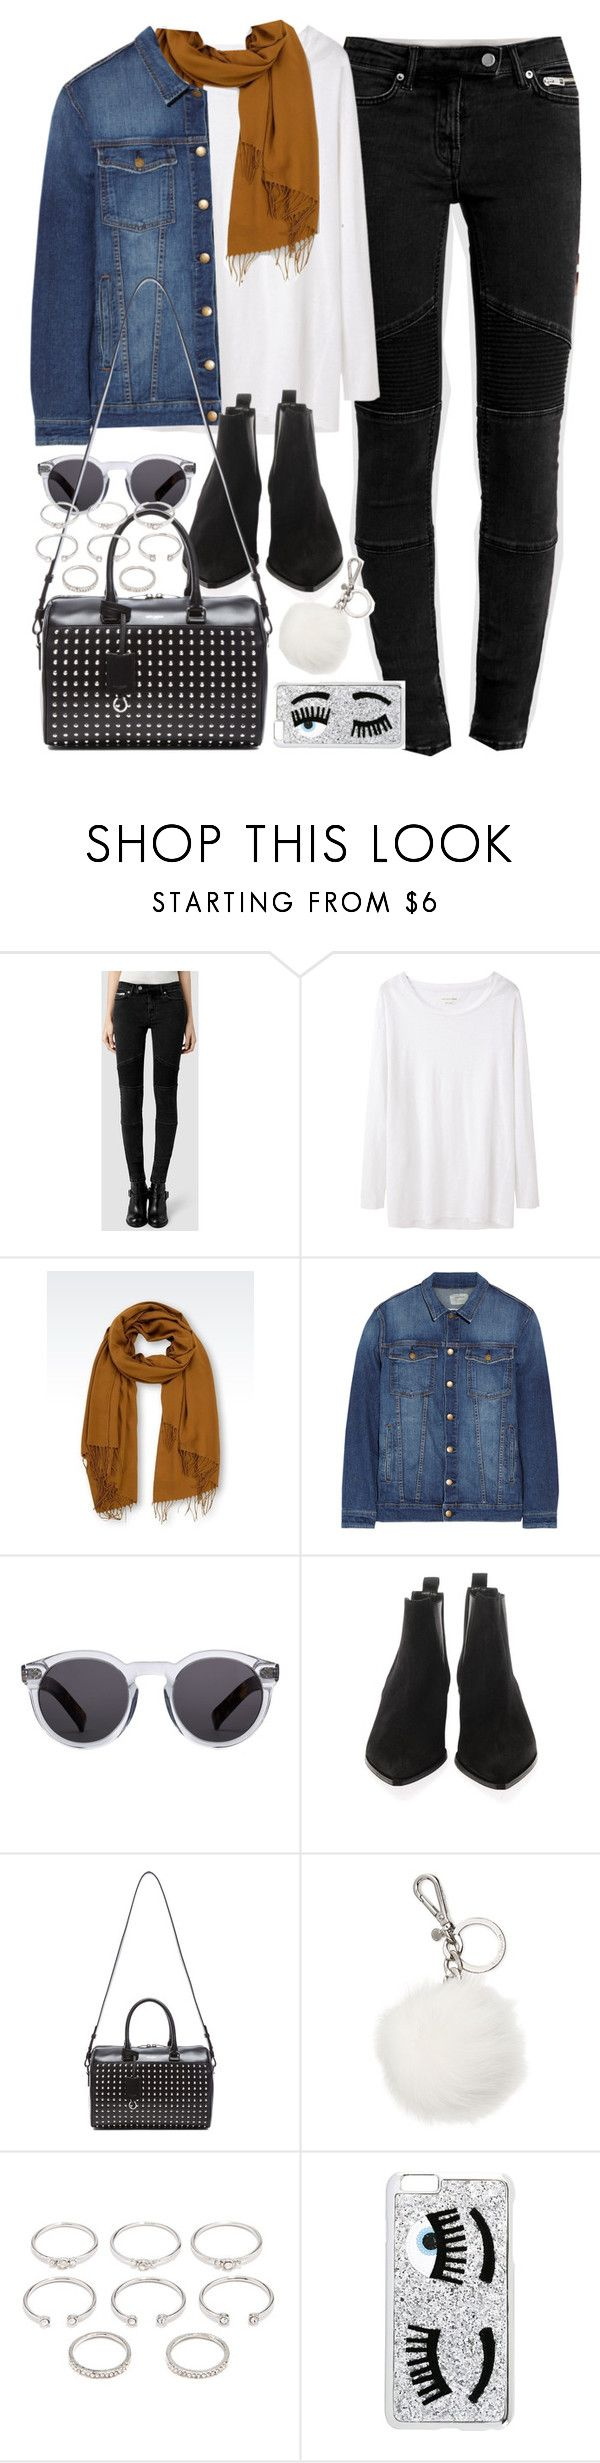 """""""Outfit with Chelsea boots and a white top"""" by ferned ❤ liked on Polyvore featuring AllSaints, Étoile Isabel Marant, Emporio Armani, Current/Elliott, Illesteva, Acne Studios, Yves Saint Laurent, Michael Kors, Forever 21 and Chiara Ferragni"""